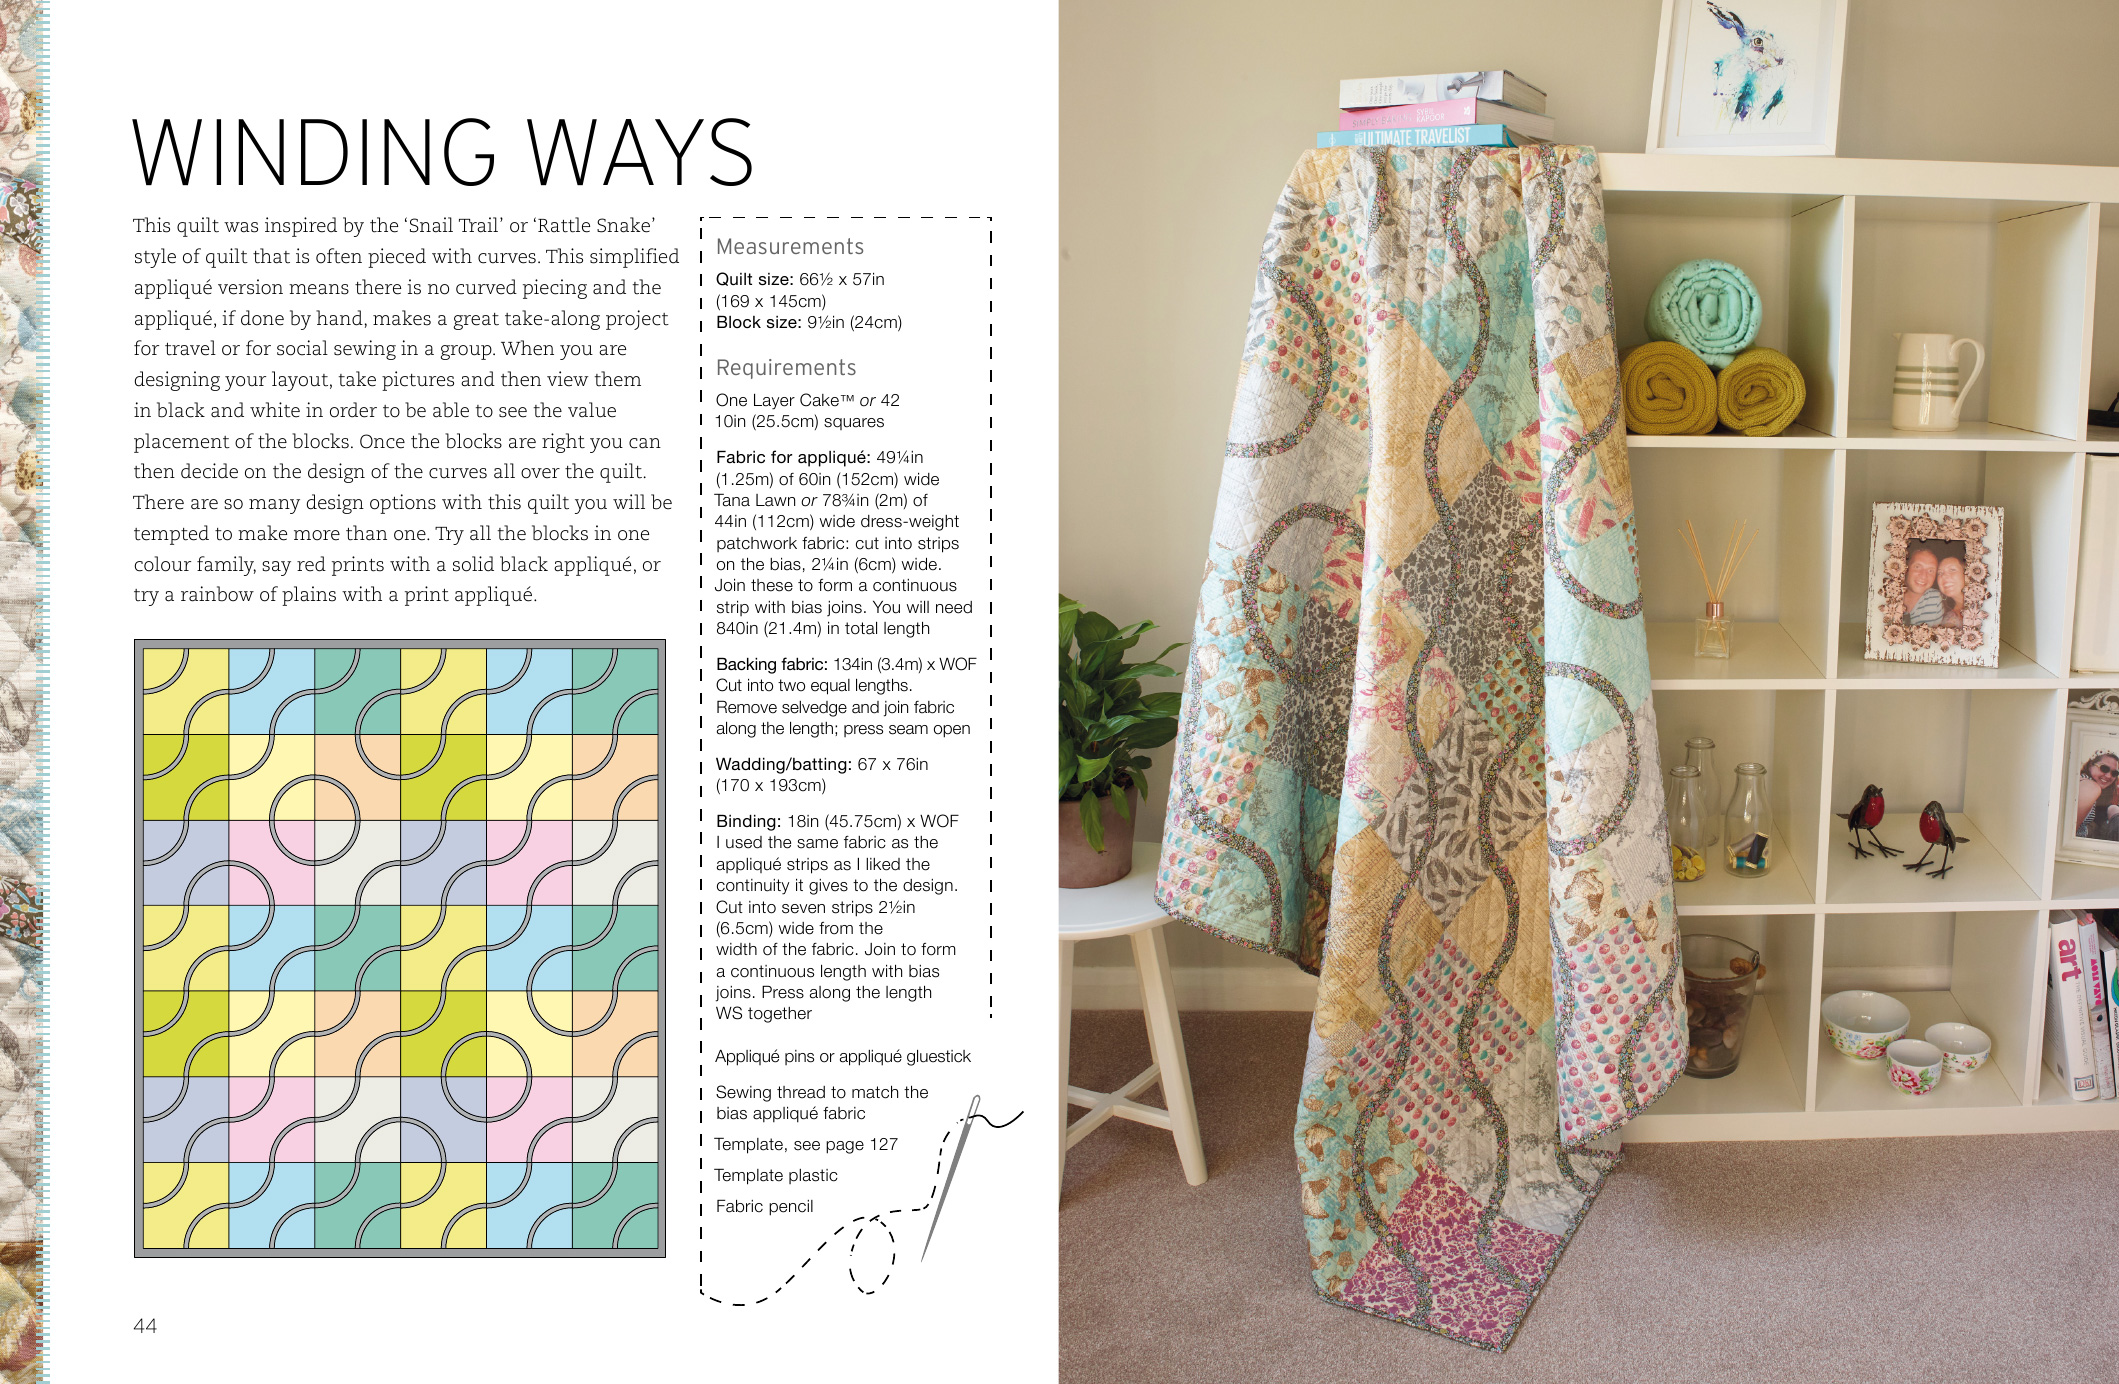 Sew-Layer-Cake-Quilts-and-Gifts-44-45